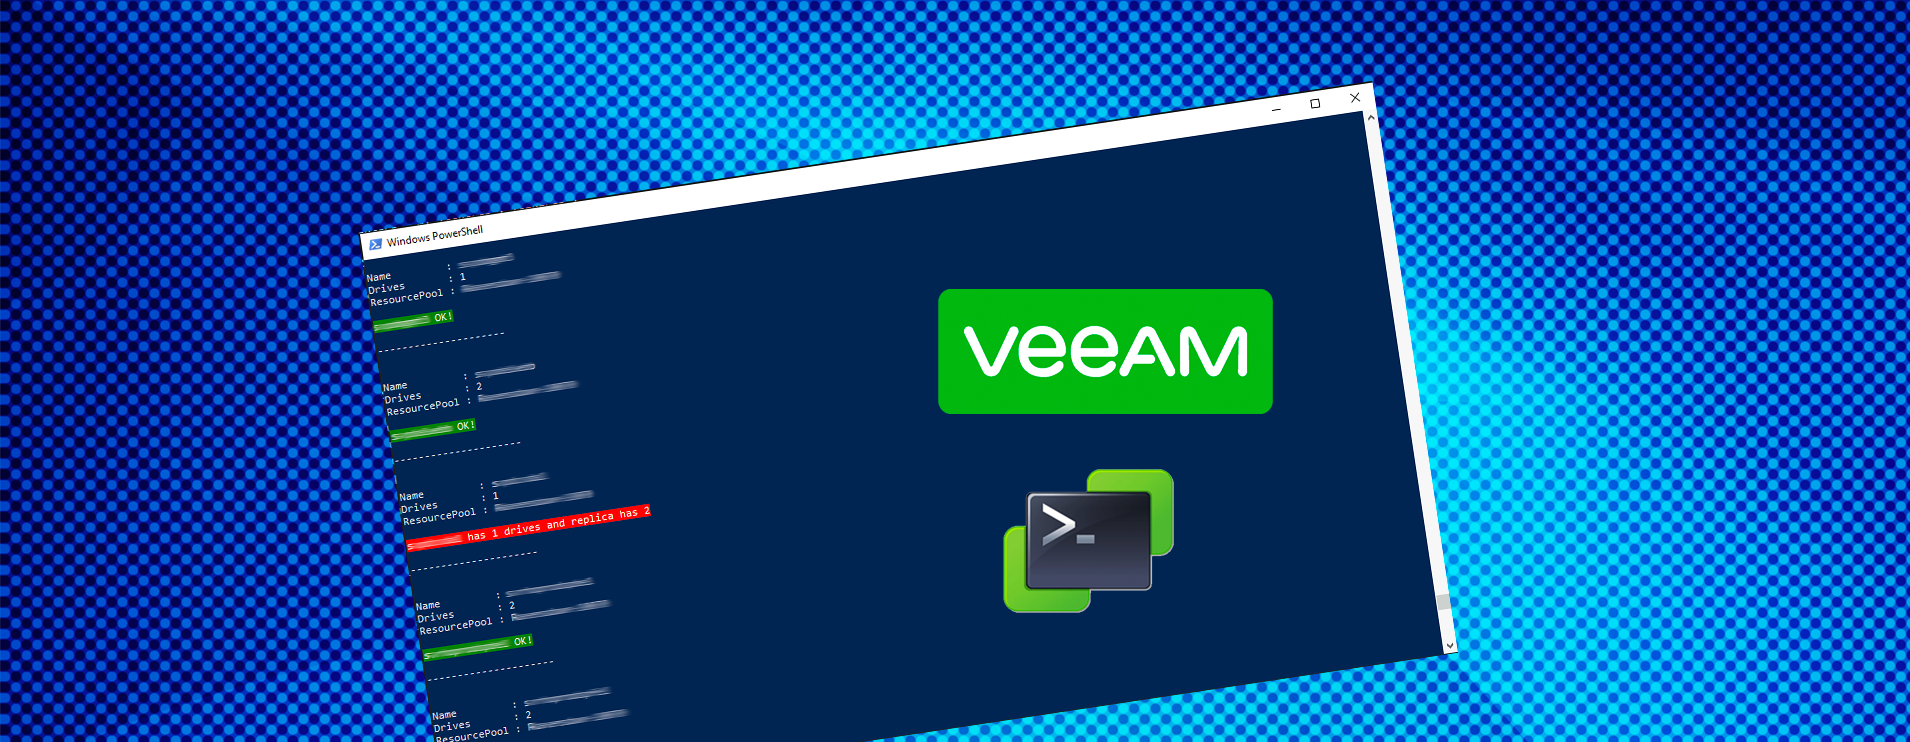 Find stale disks on Veeam Replicas using PowerShell